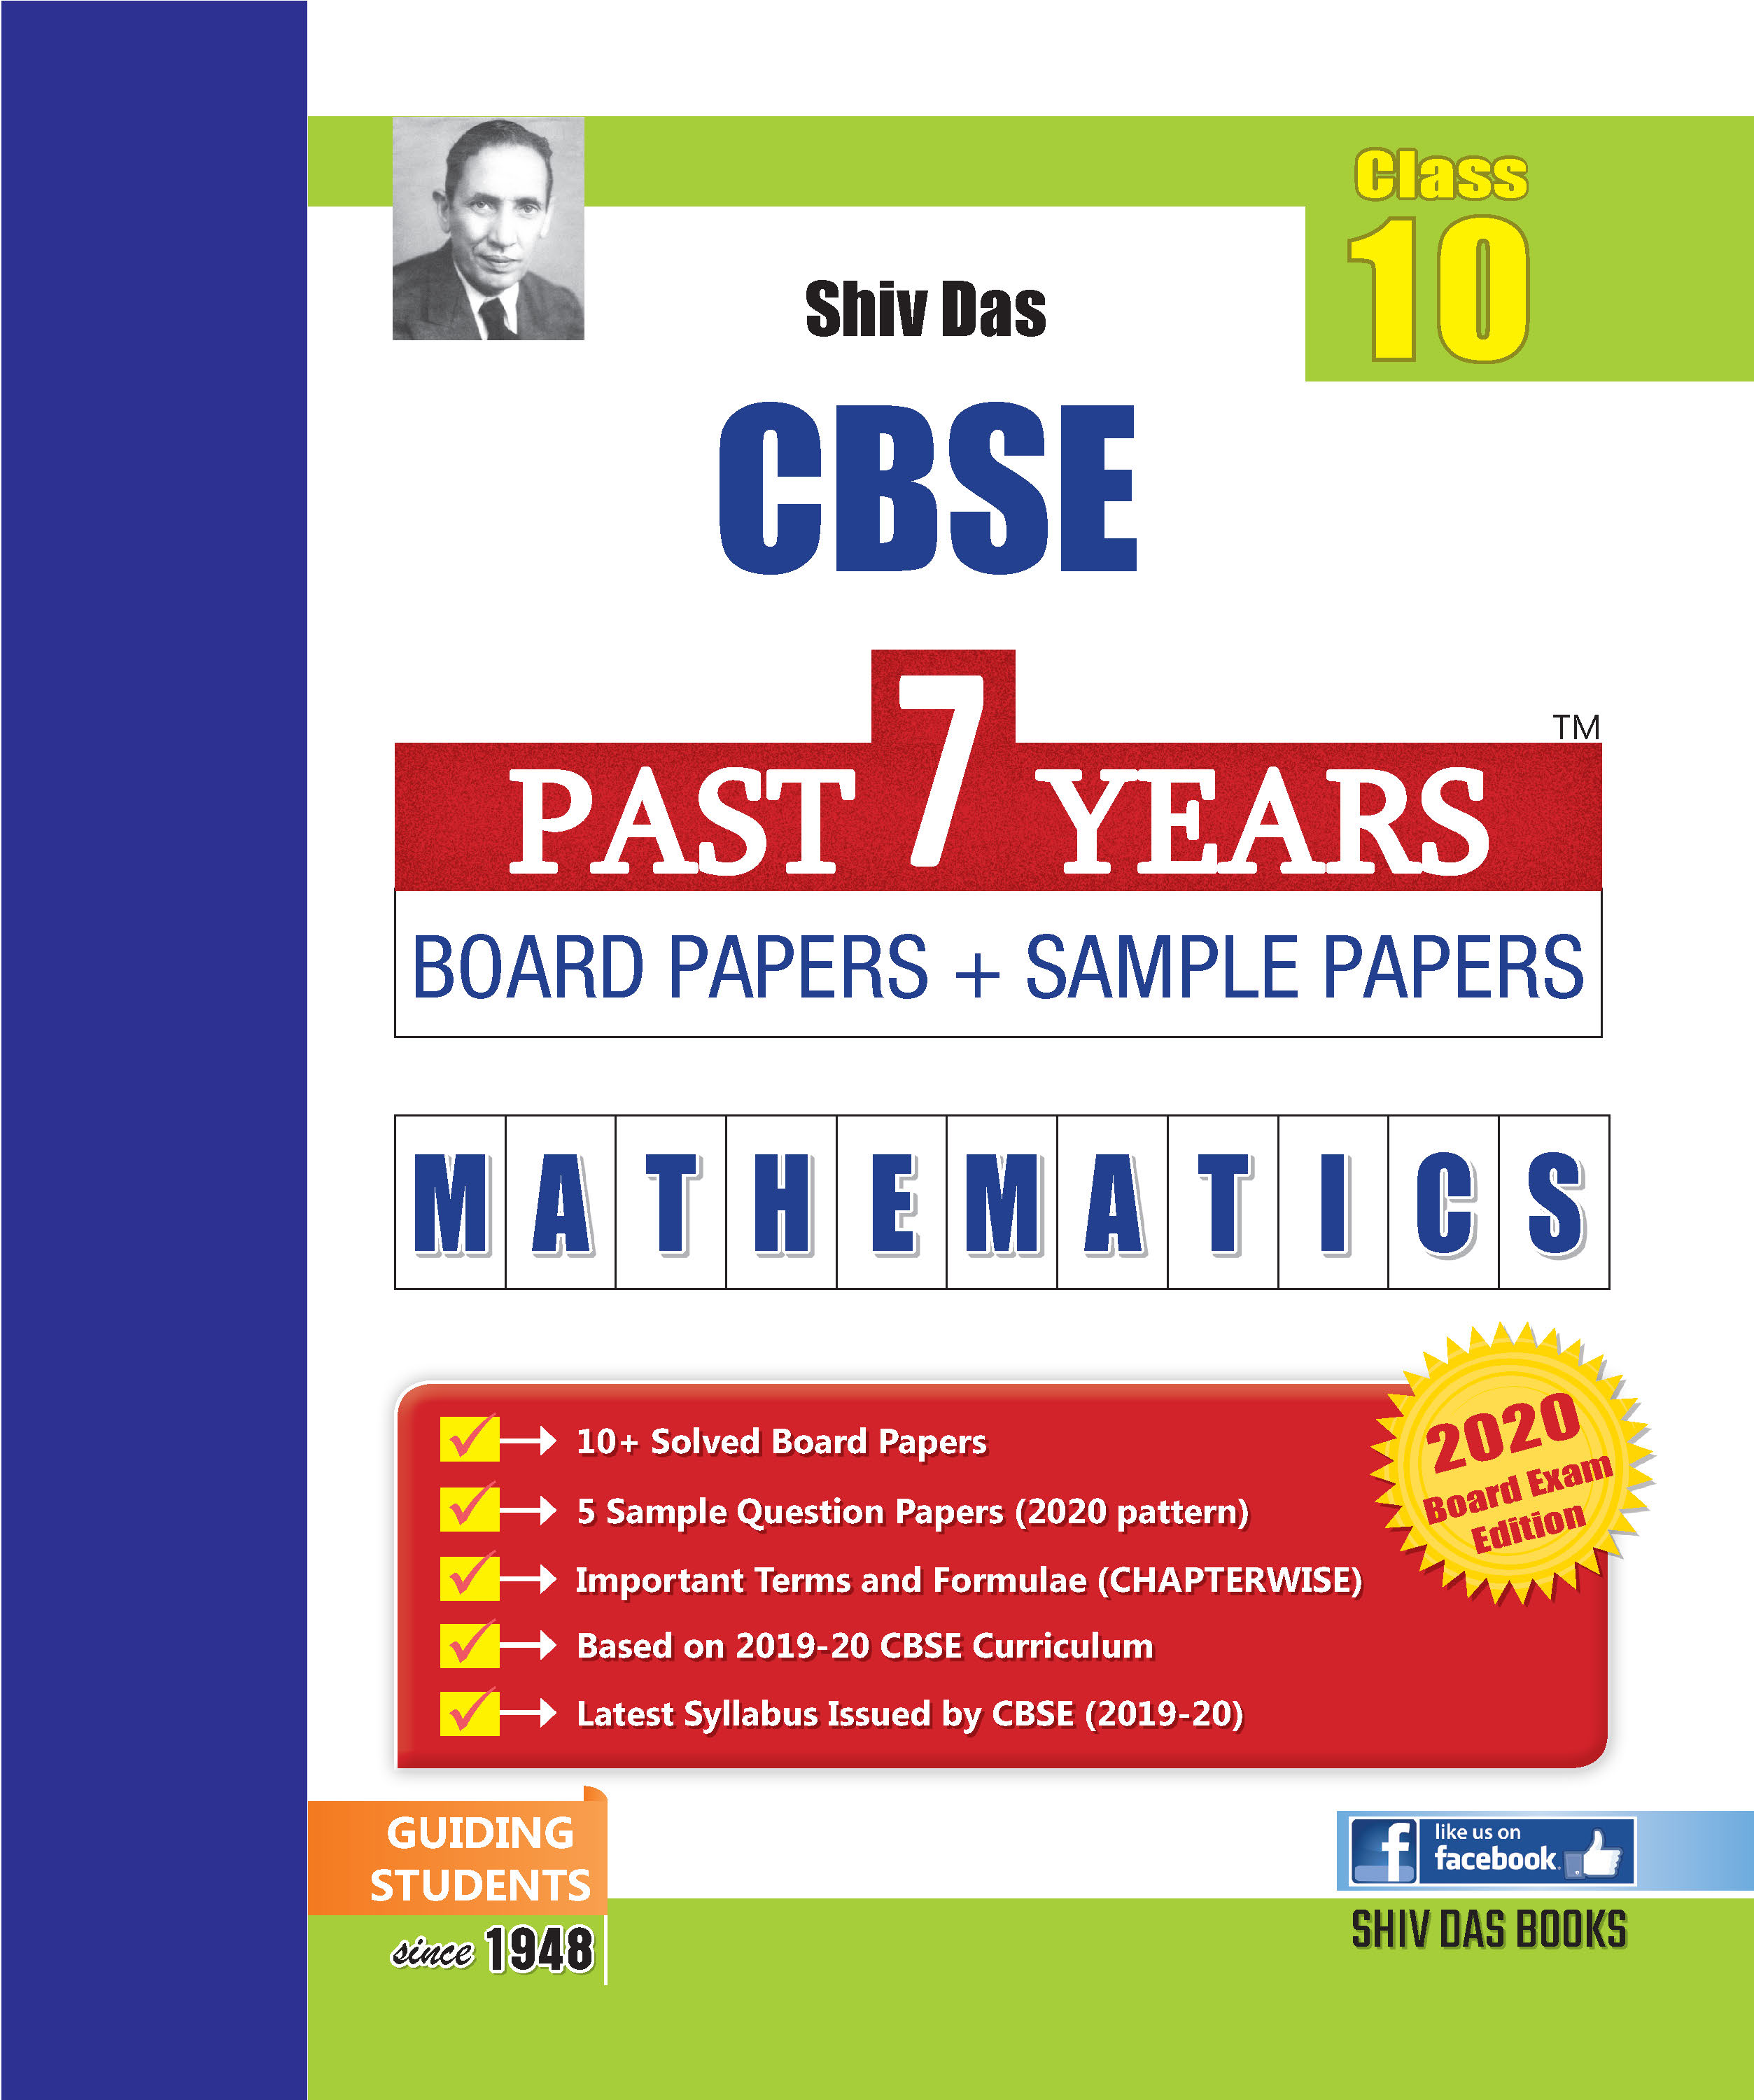 CBSE Past 7 Years Solved Board Papers+Sample Papers for Class 10 Maths (2020 Board Exam Edition)